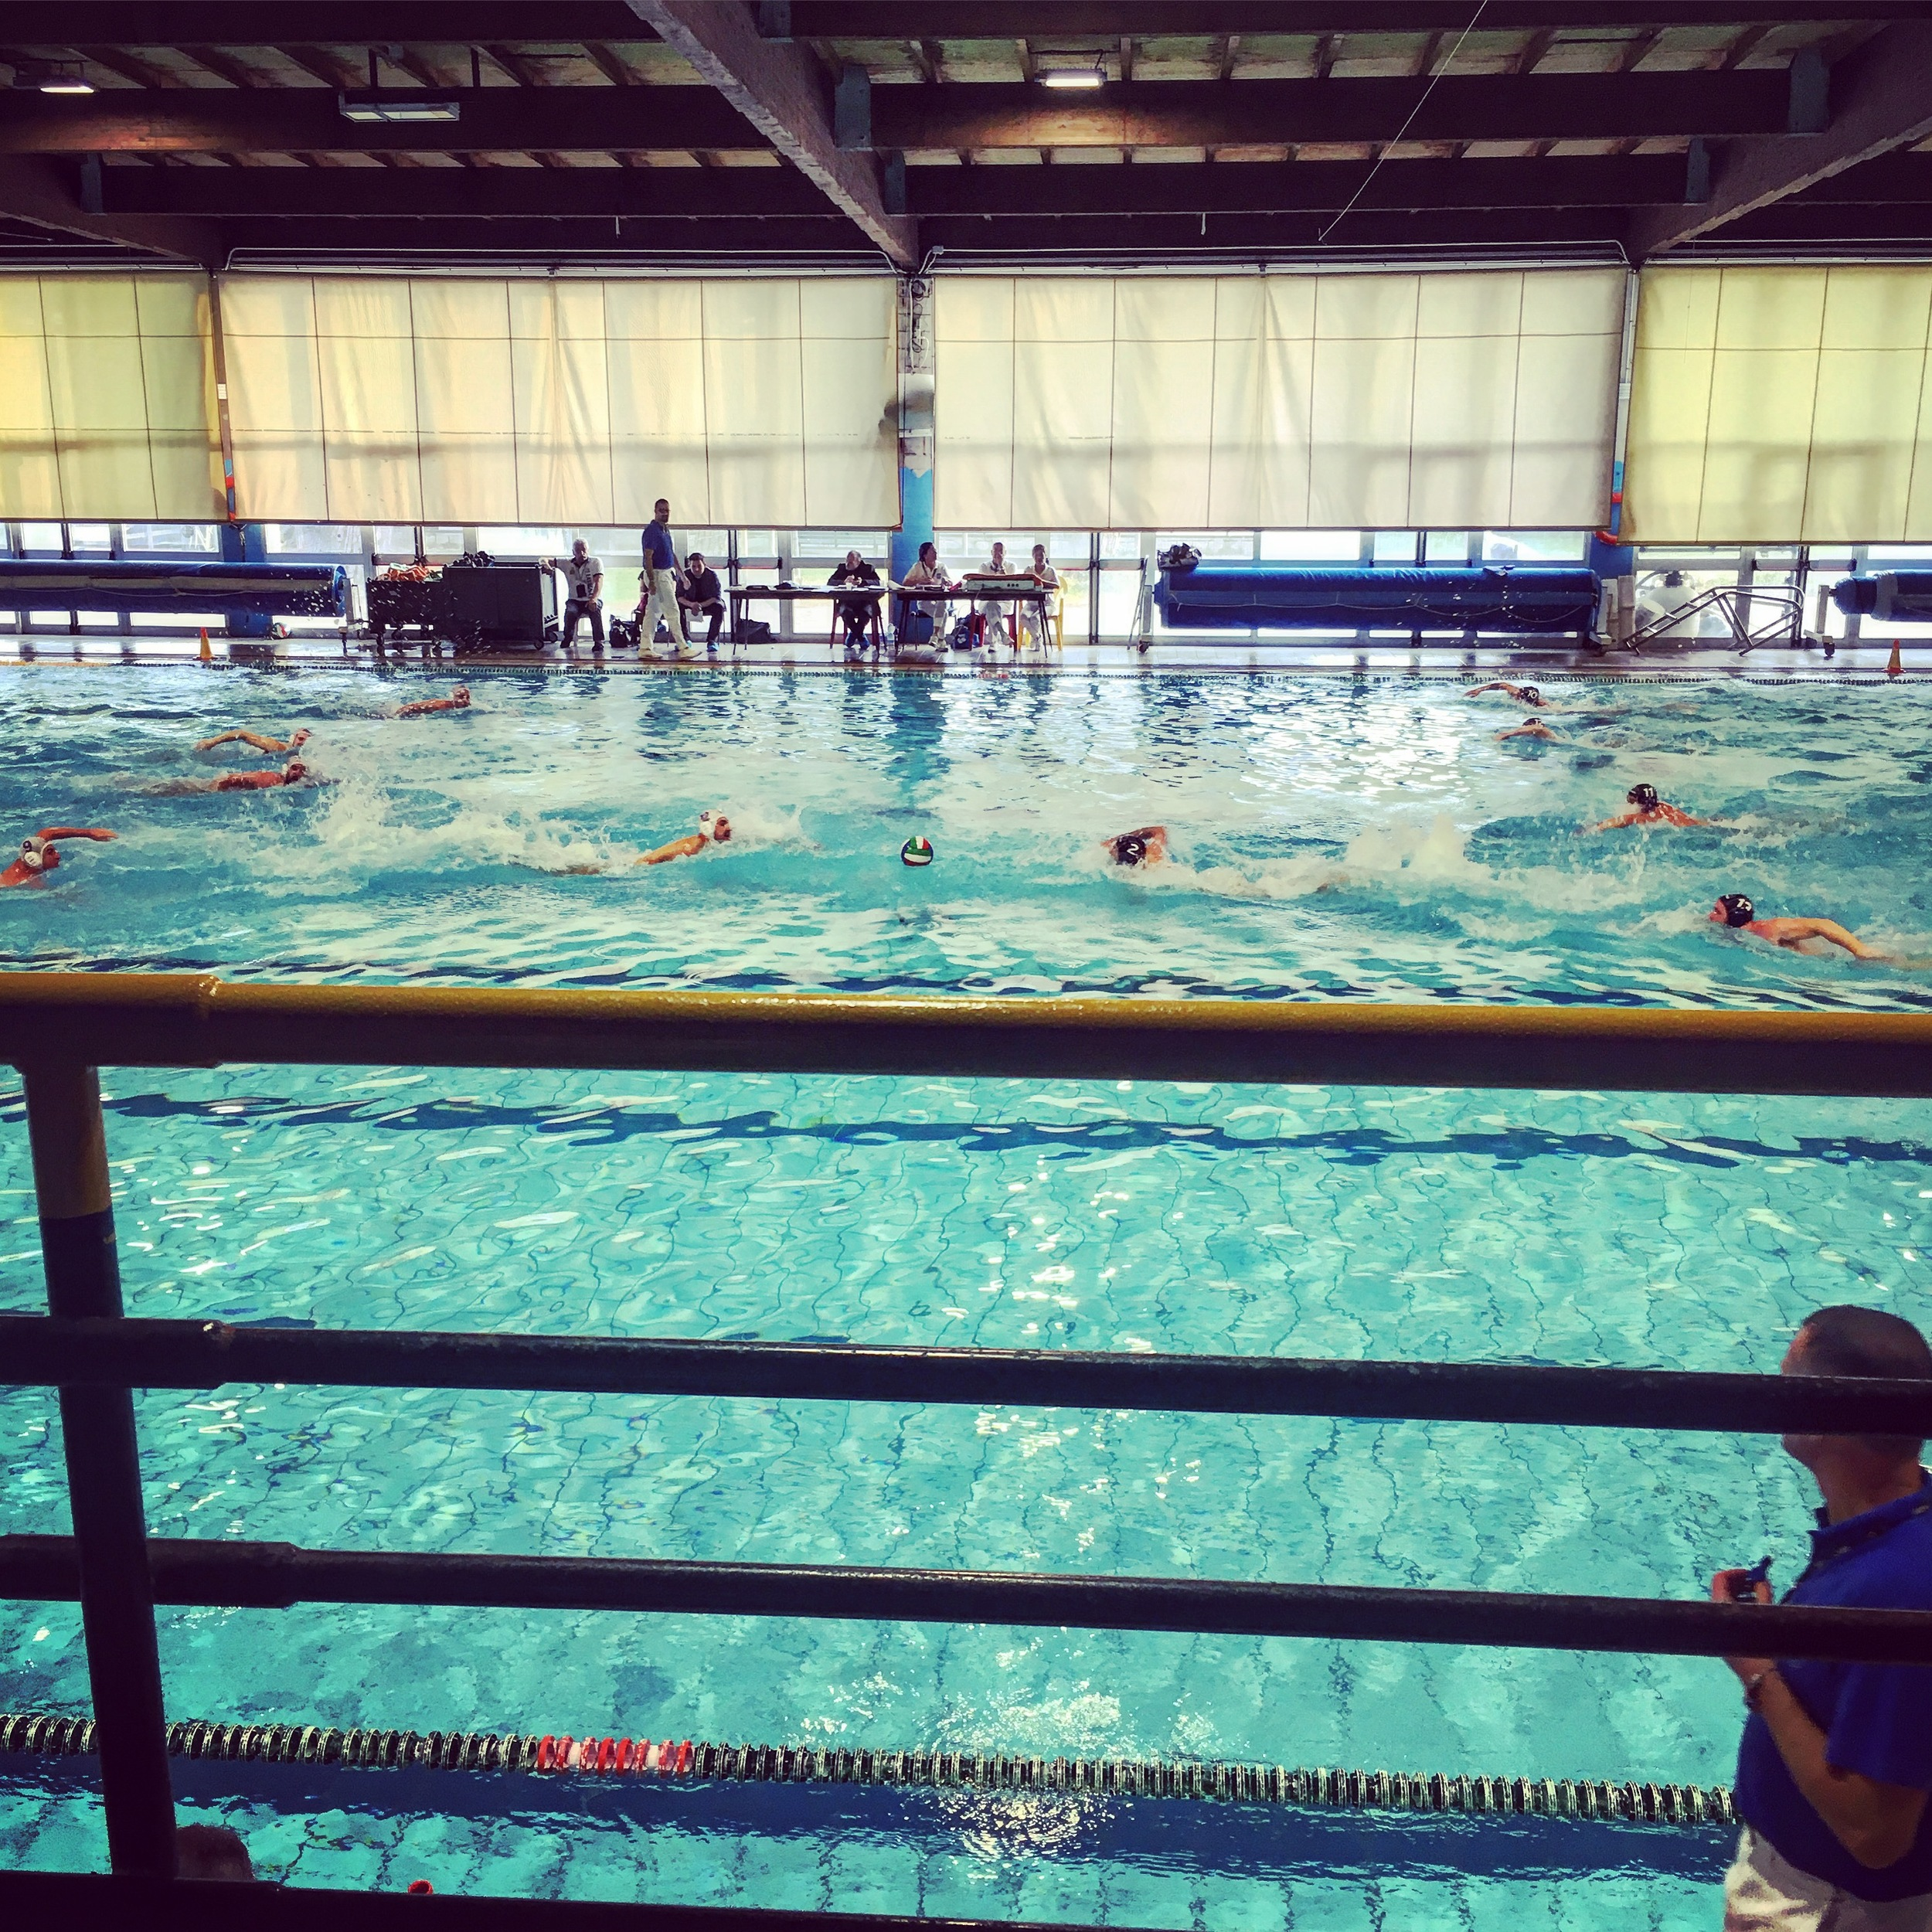 (Water polo match in action)